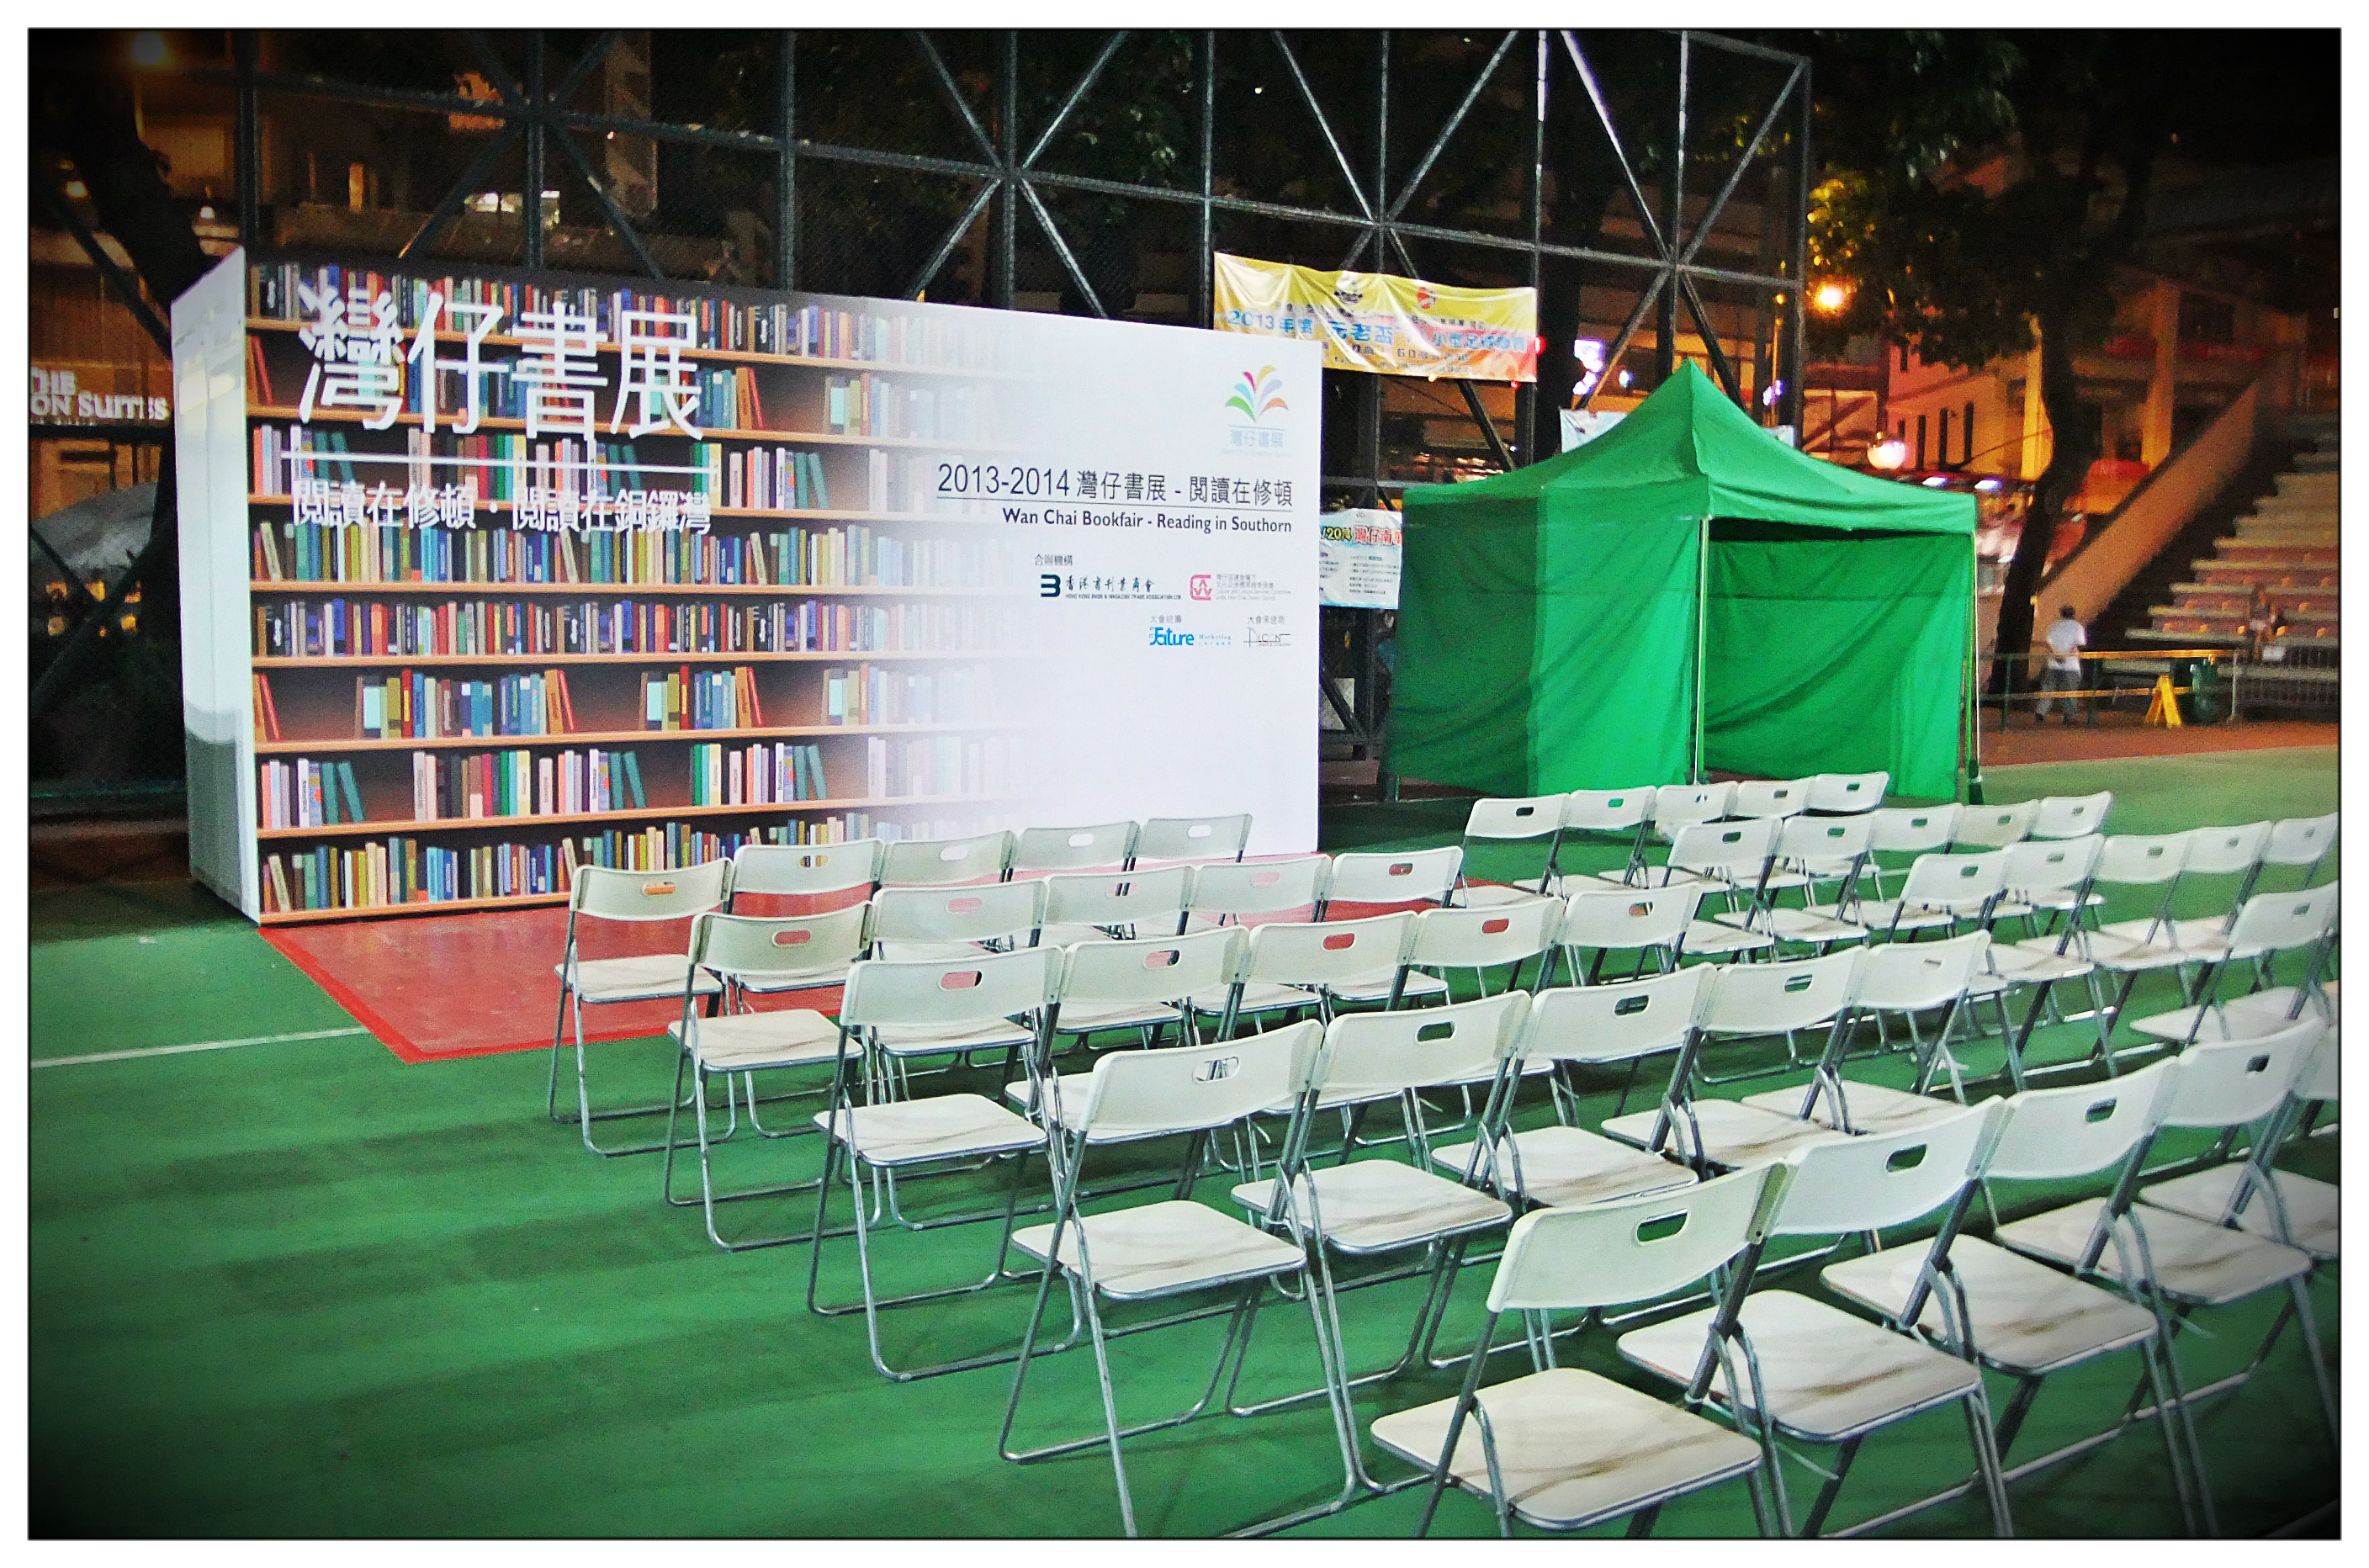 southorn_book_fair_03.jpg